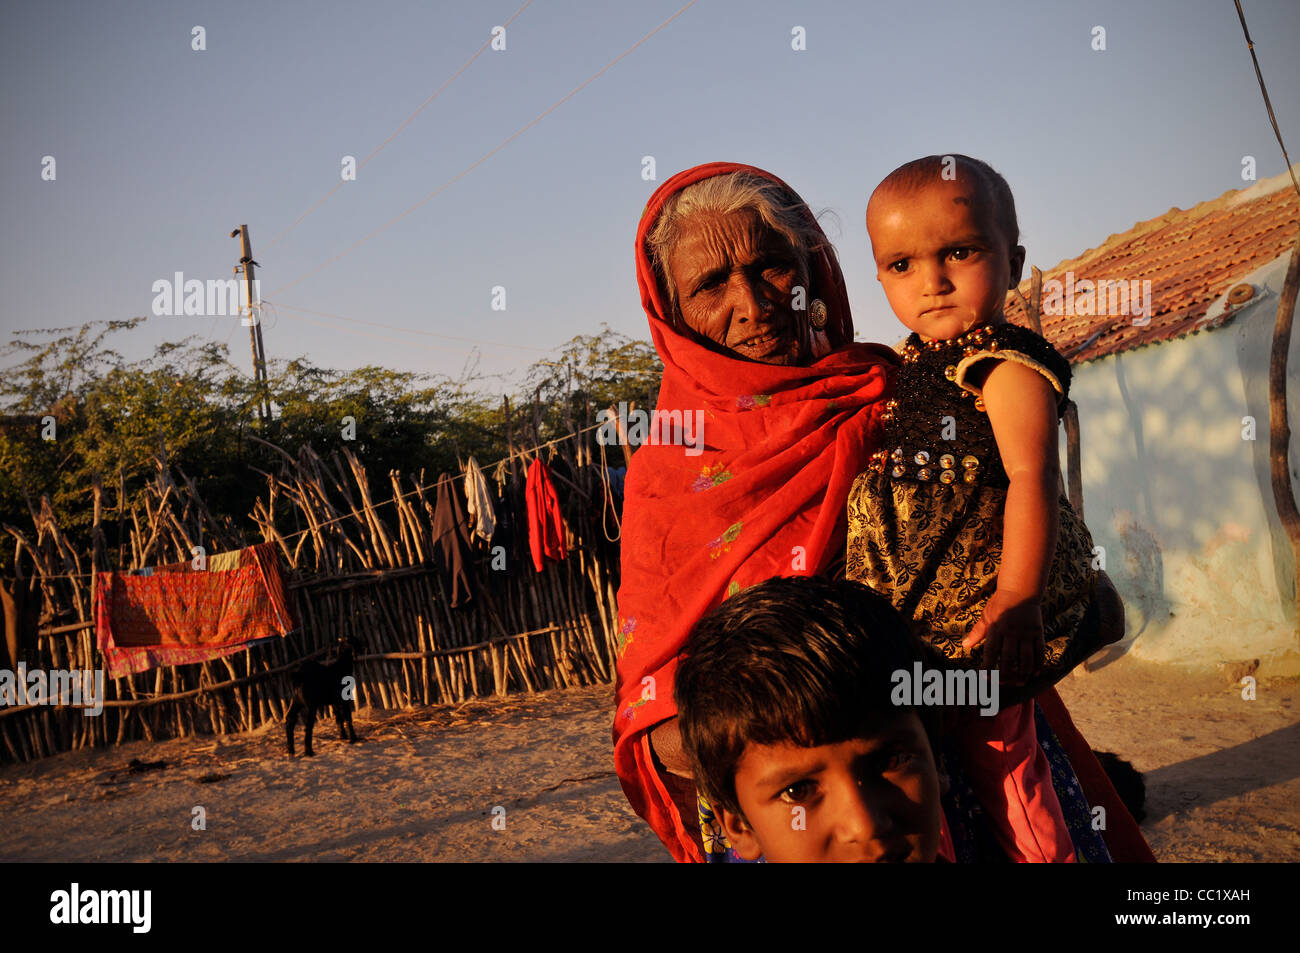 People in Kutch- Western India - Stock Image